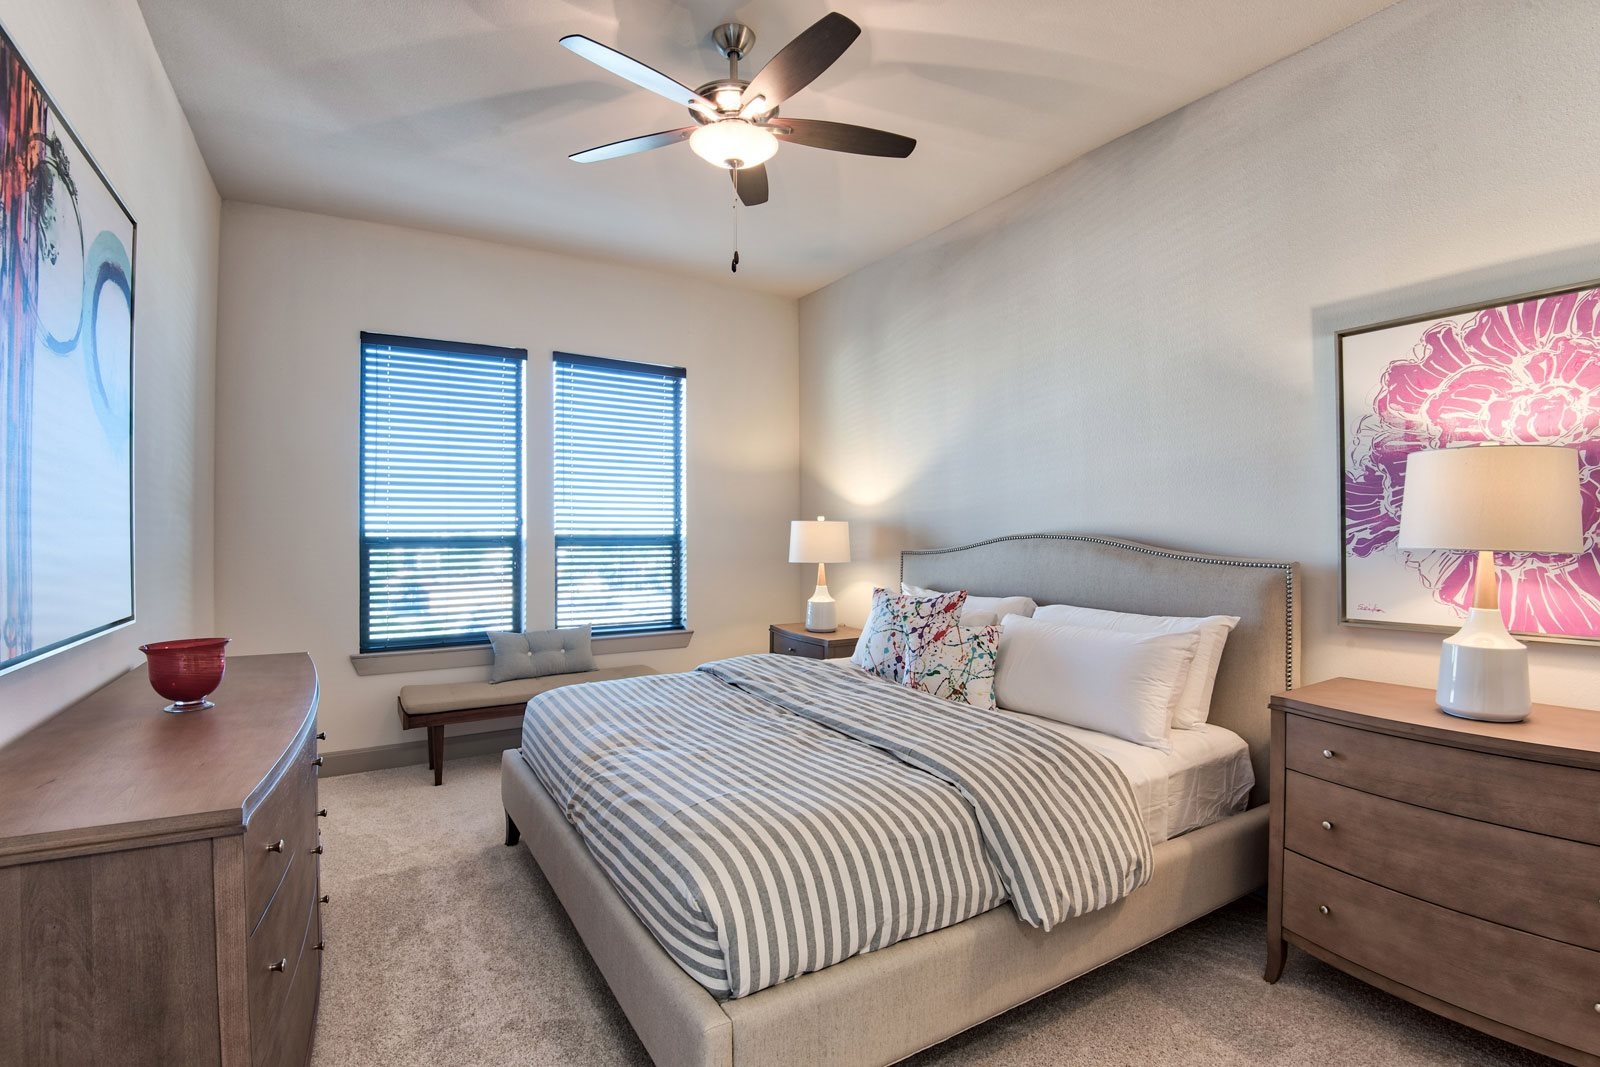 Contemporary Ceiling Fans Throughout at Midtown Houston by Windsor, 77002, Houston